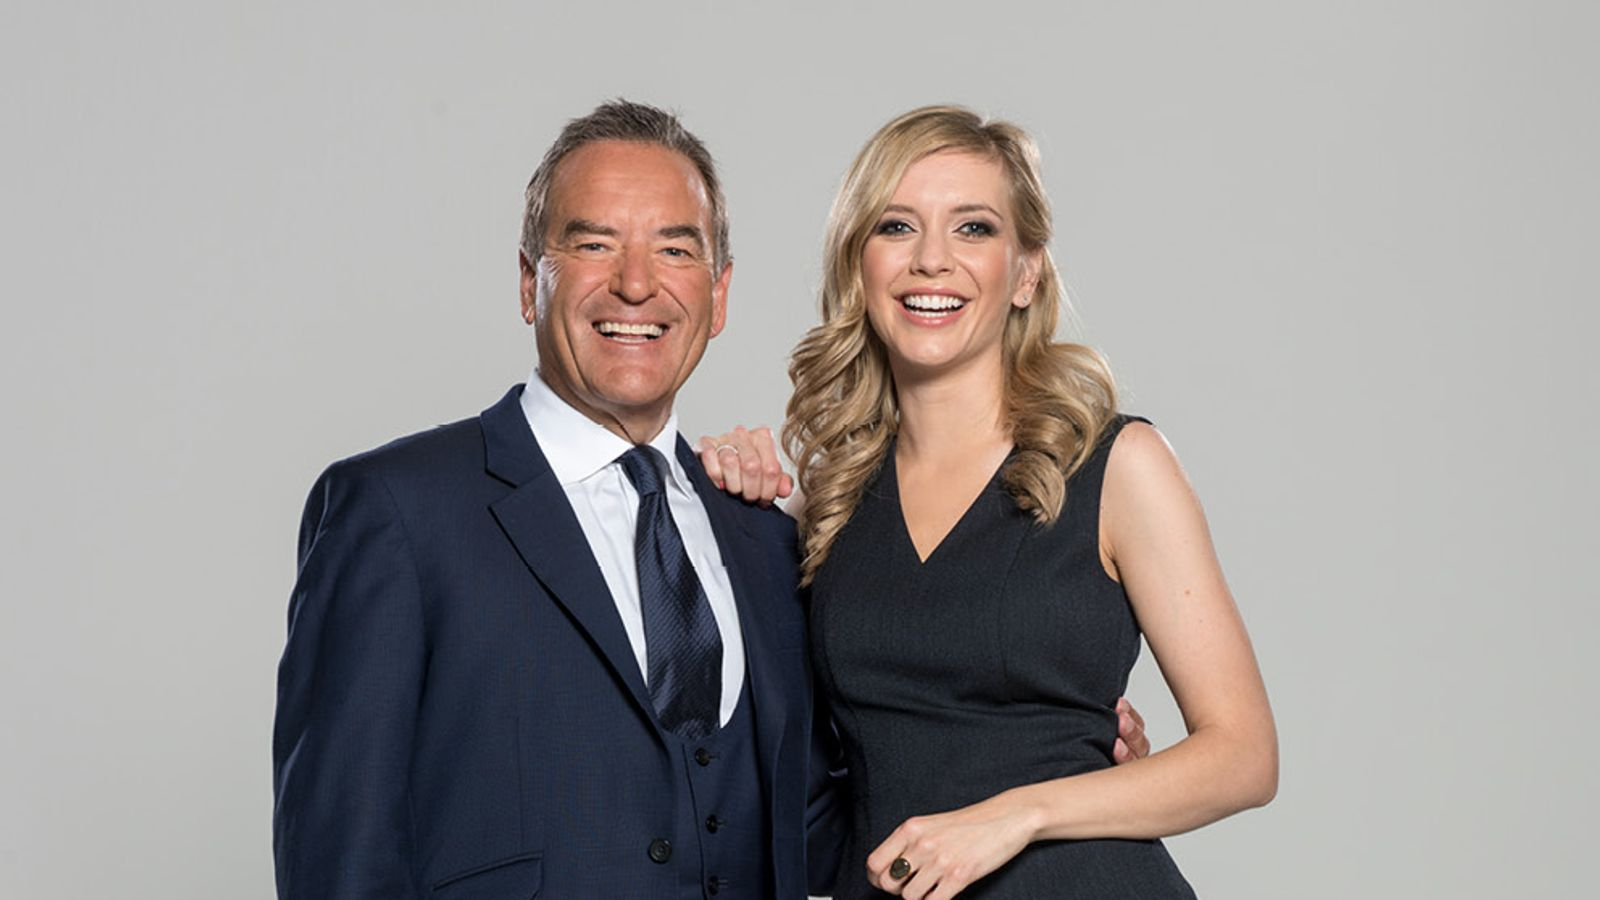 e8e20cb6afc Jeff Stelling and Rachel Riley discuss their Friday Night Football plans